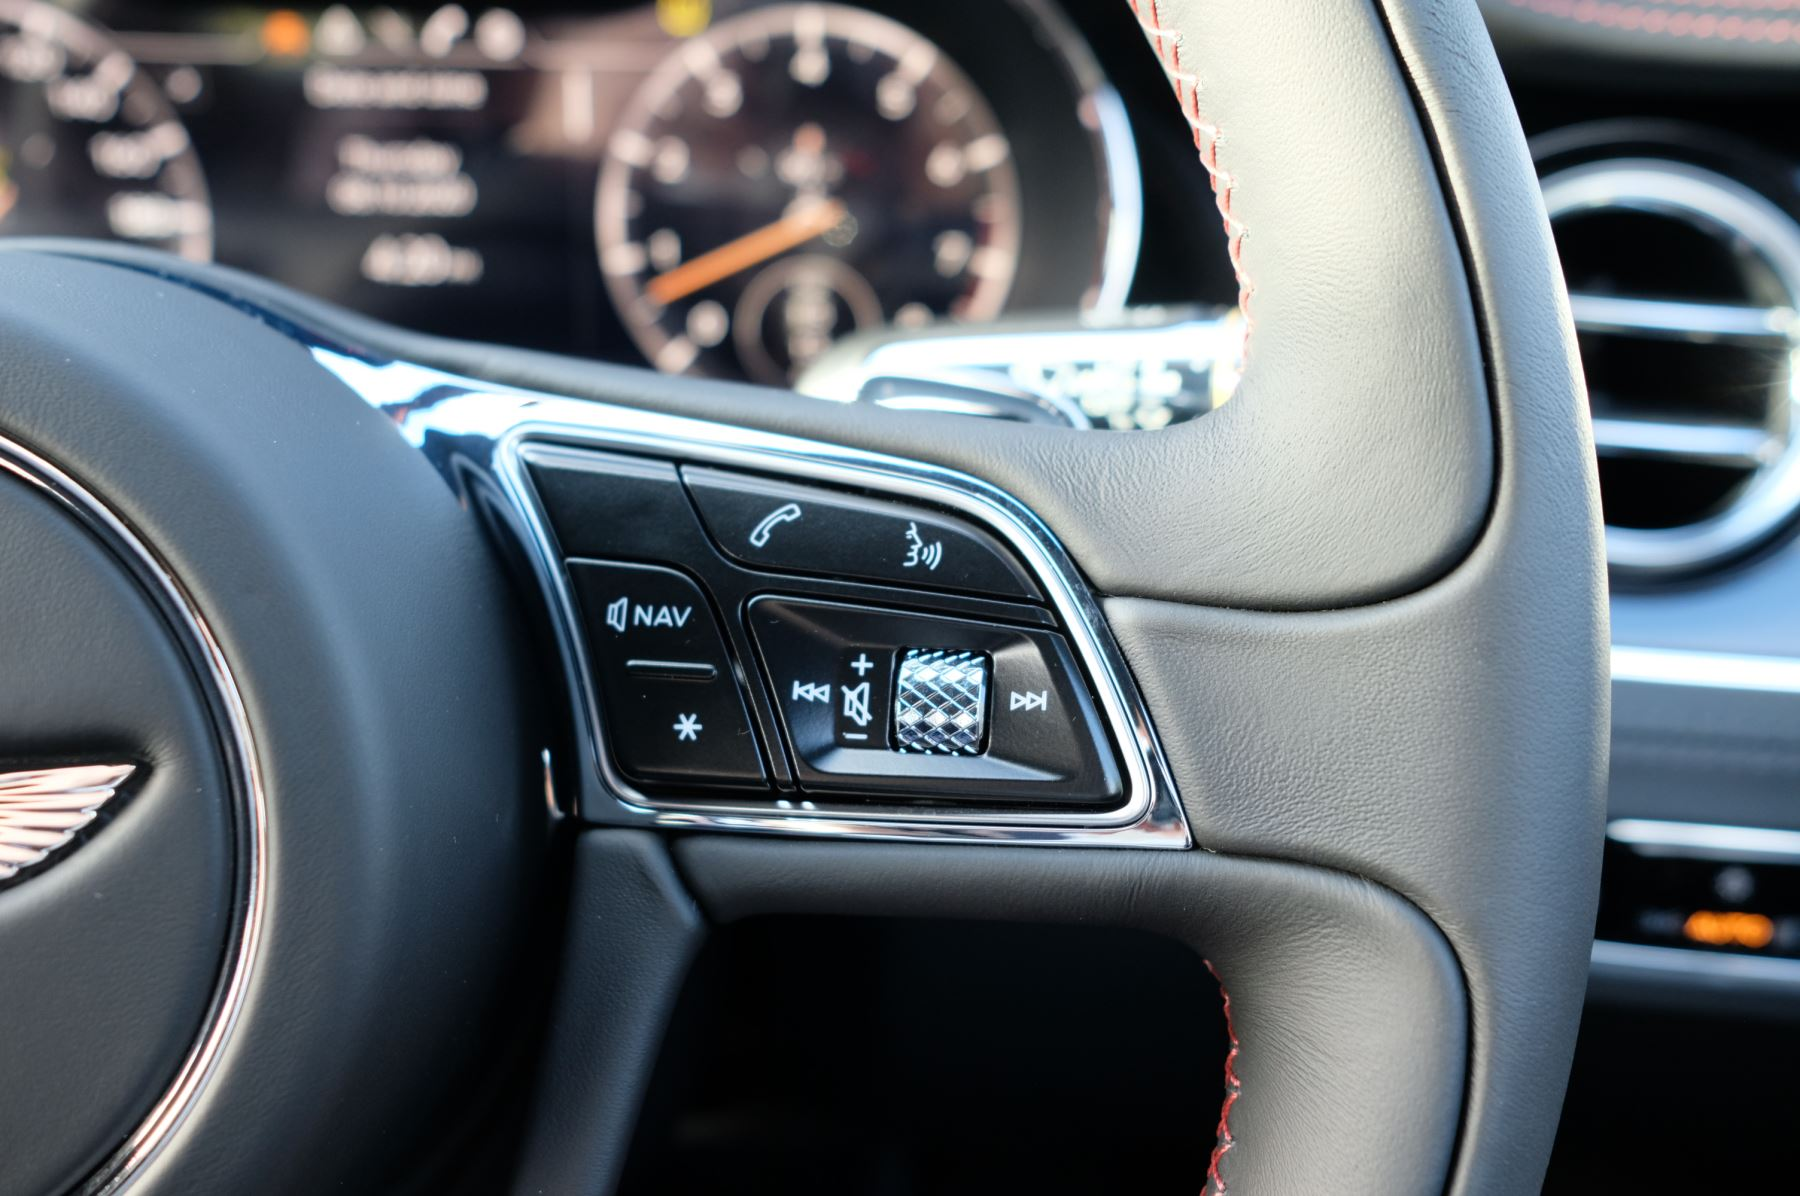 Bentley Continental GT 4.0 V8 2dr Auto [City+Touring Spec] image 21